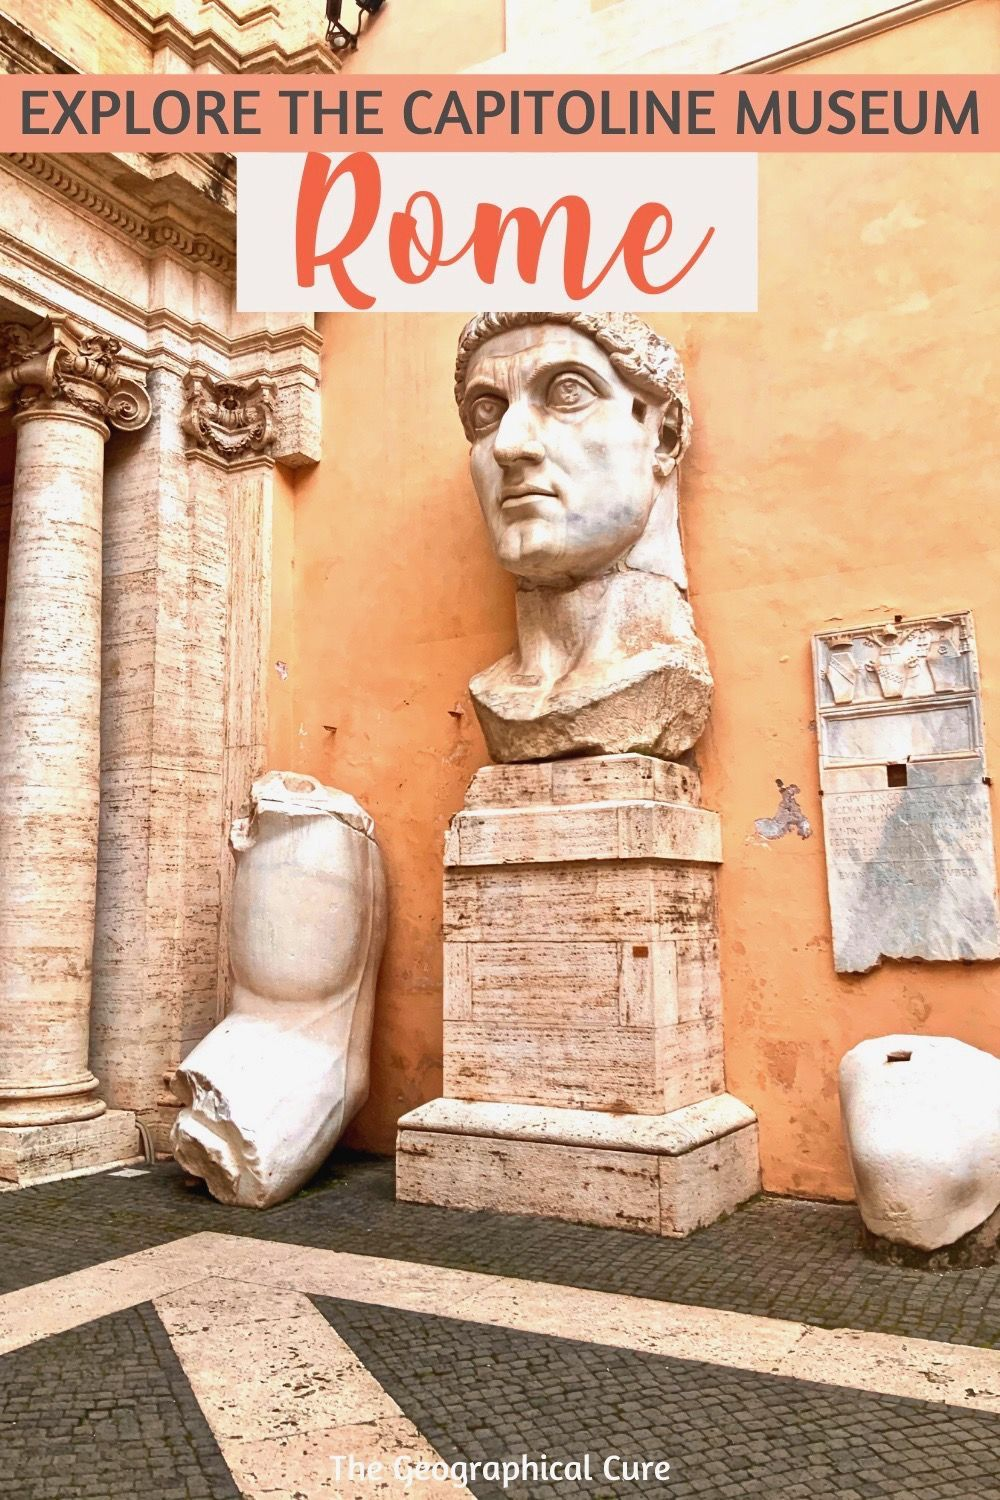 Guide to Rome's Capitoline Museum -- Unbelievable Sculpture! - #capitoline #guide #museum #sculpture #unbelievable - #RomansMuseum